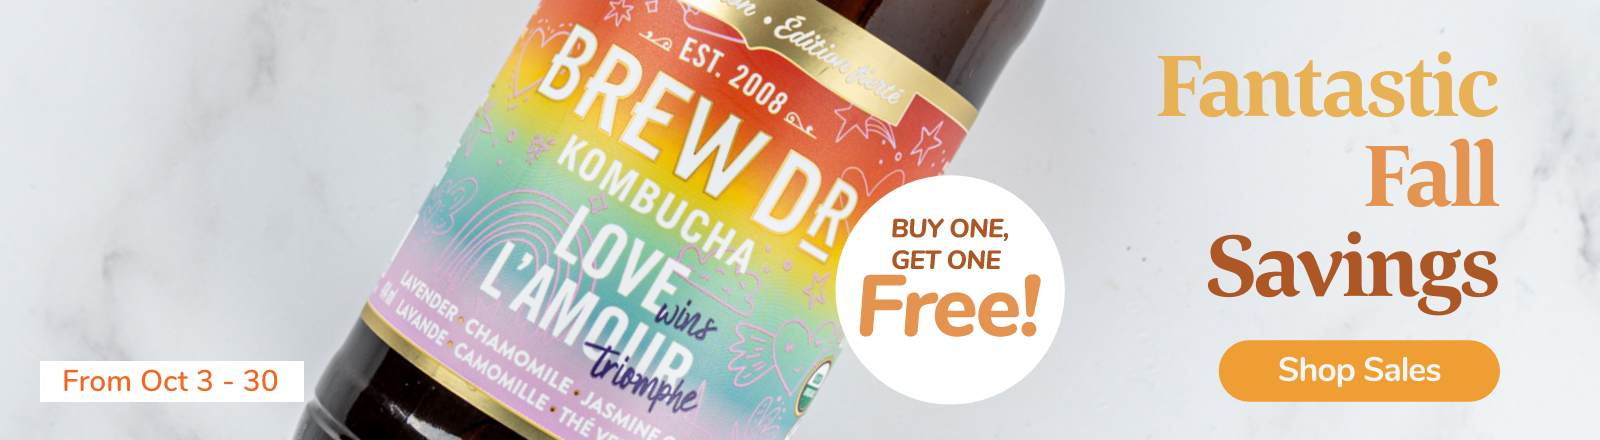 Buy One Get One Free on Brew Dr.